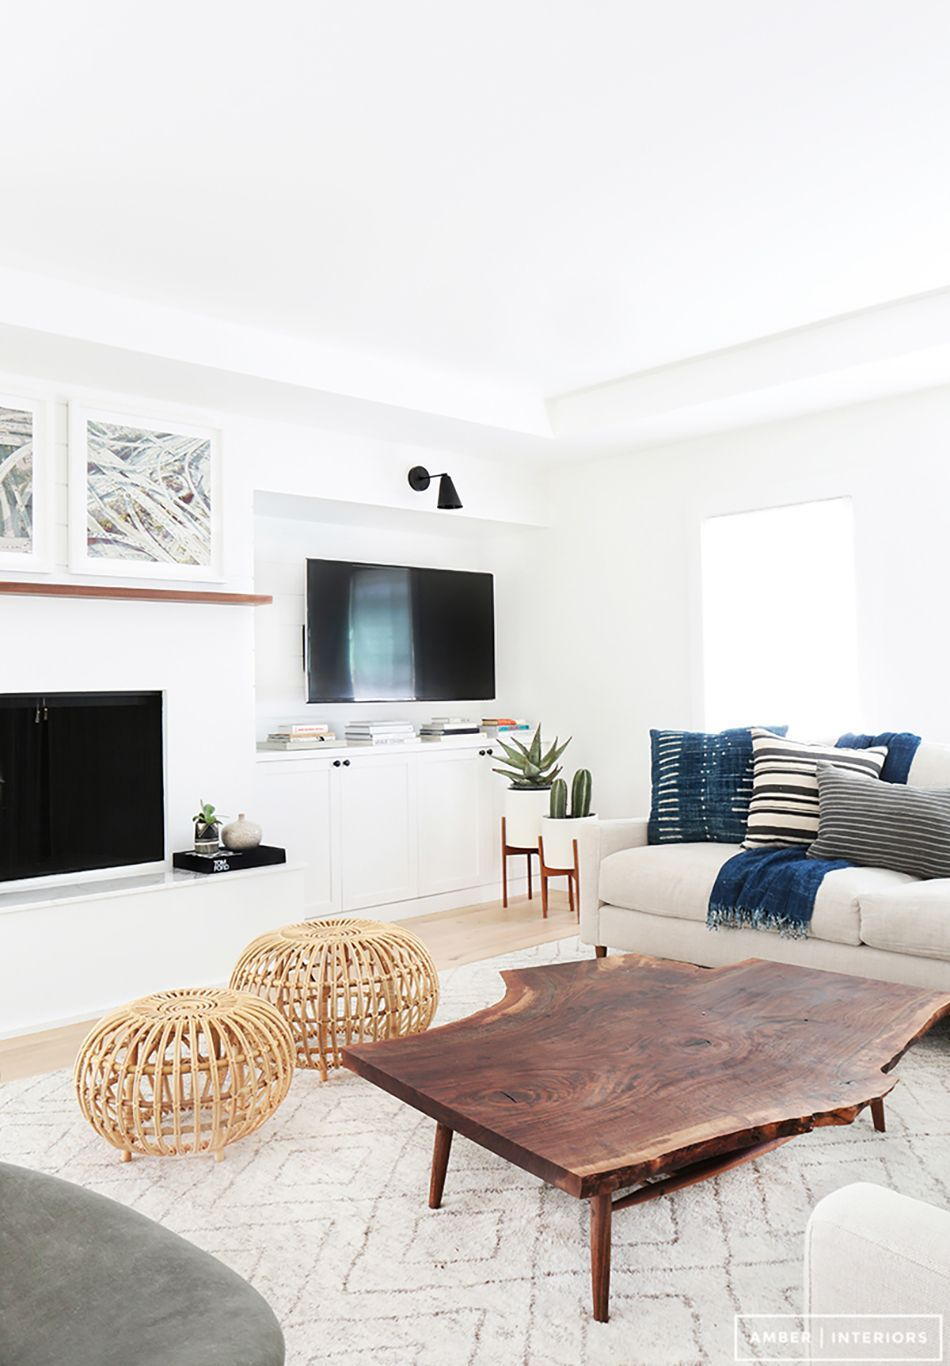 Creative coffee table design ideas for living room 22